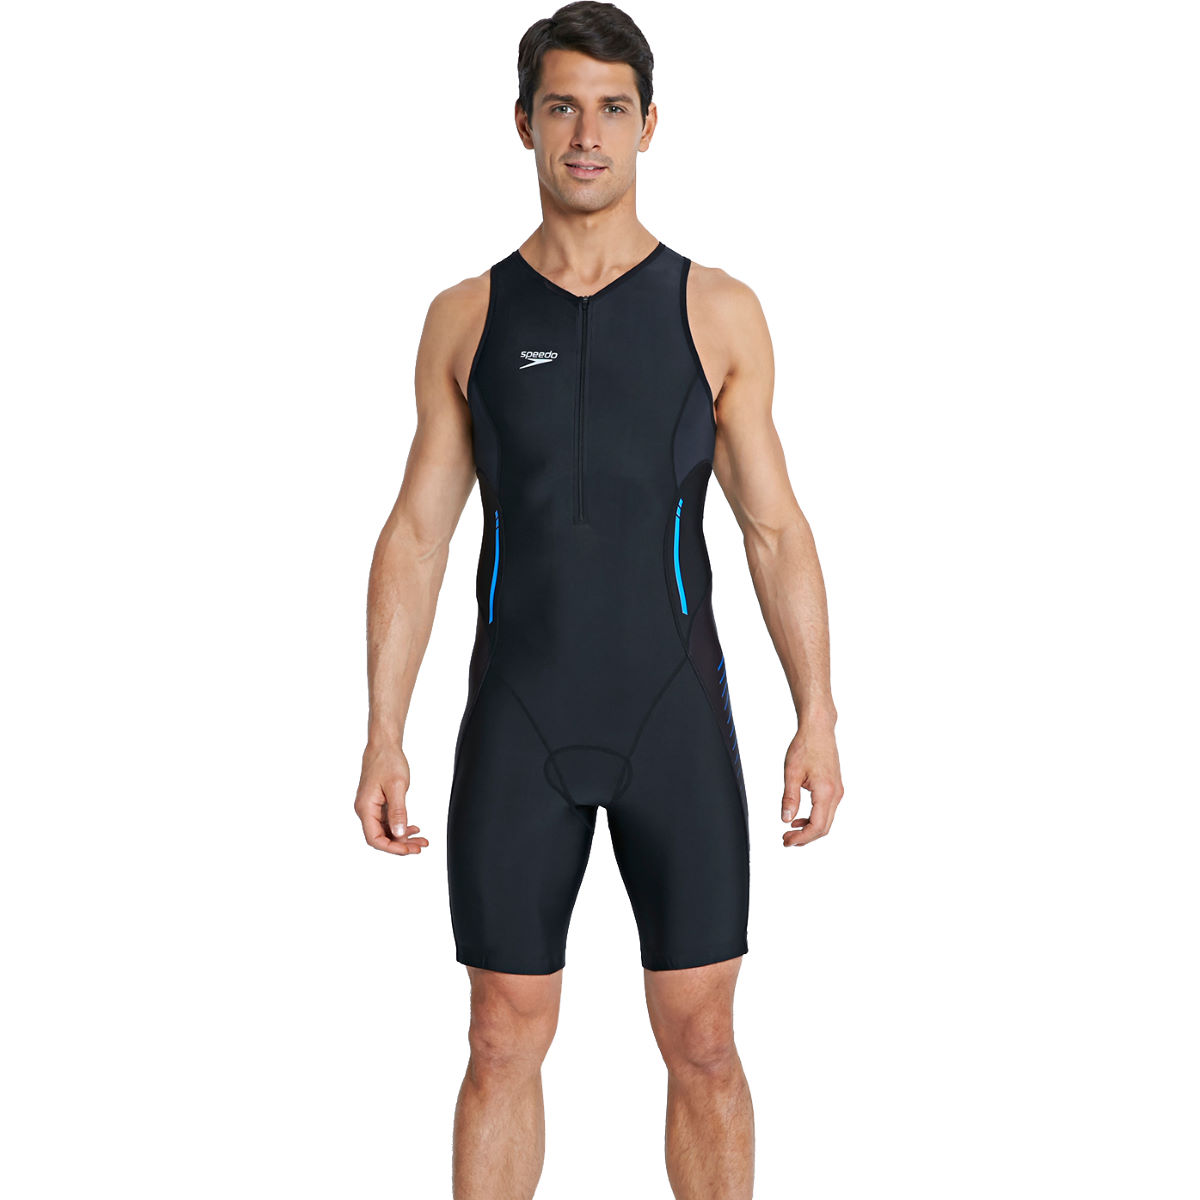 Speedo Event Tri Suit 2015